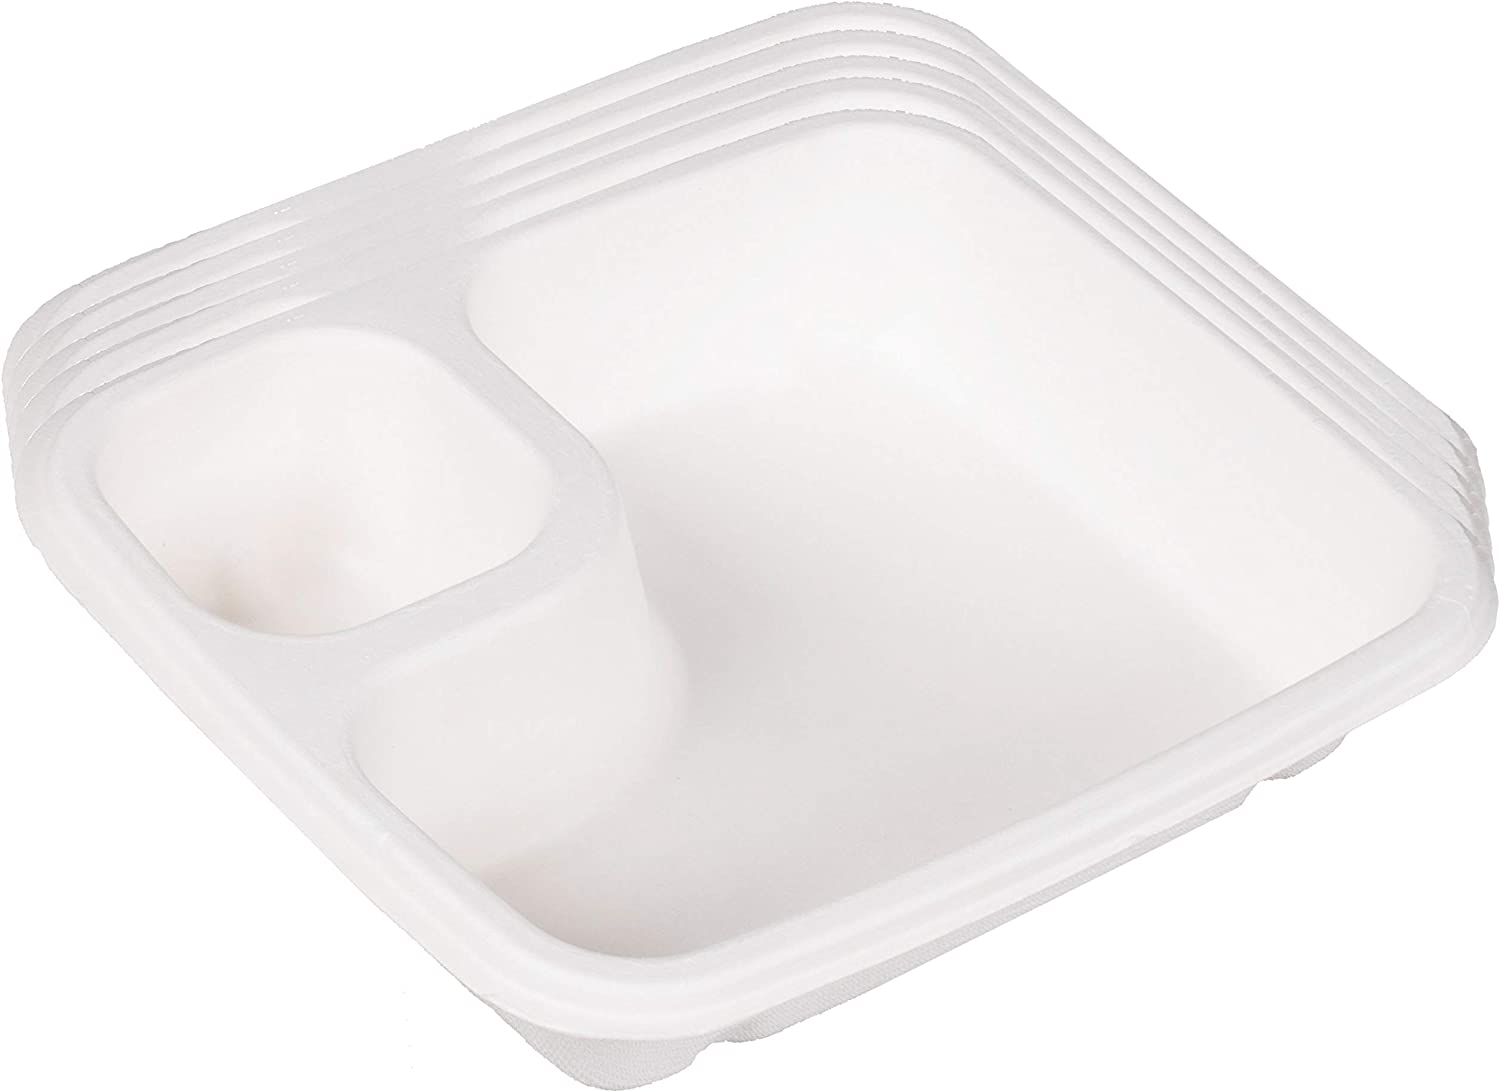 Outside the Box Papers Compostable Paper 2 Compartment Disposable Nacho Food Trays - Sugarcane Bagasse - Biodegradable and Compostable - 18 Pack